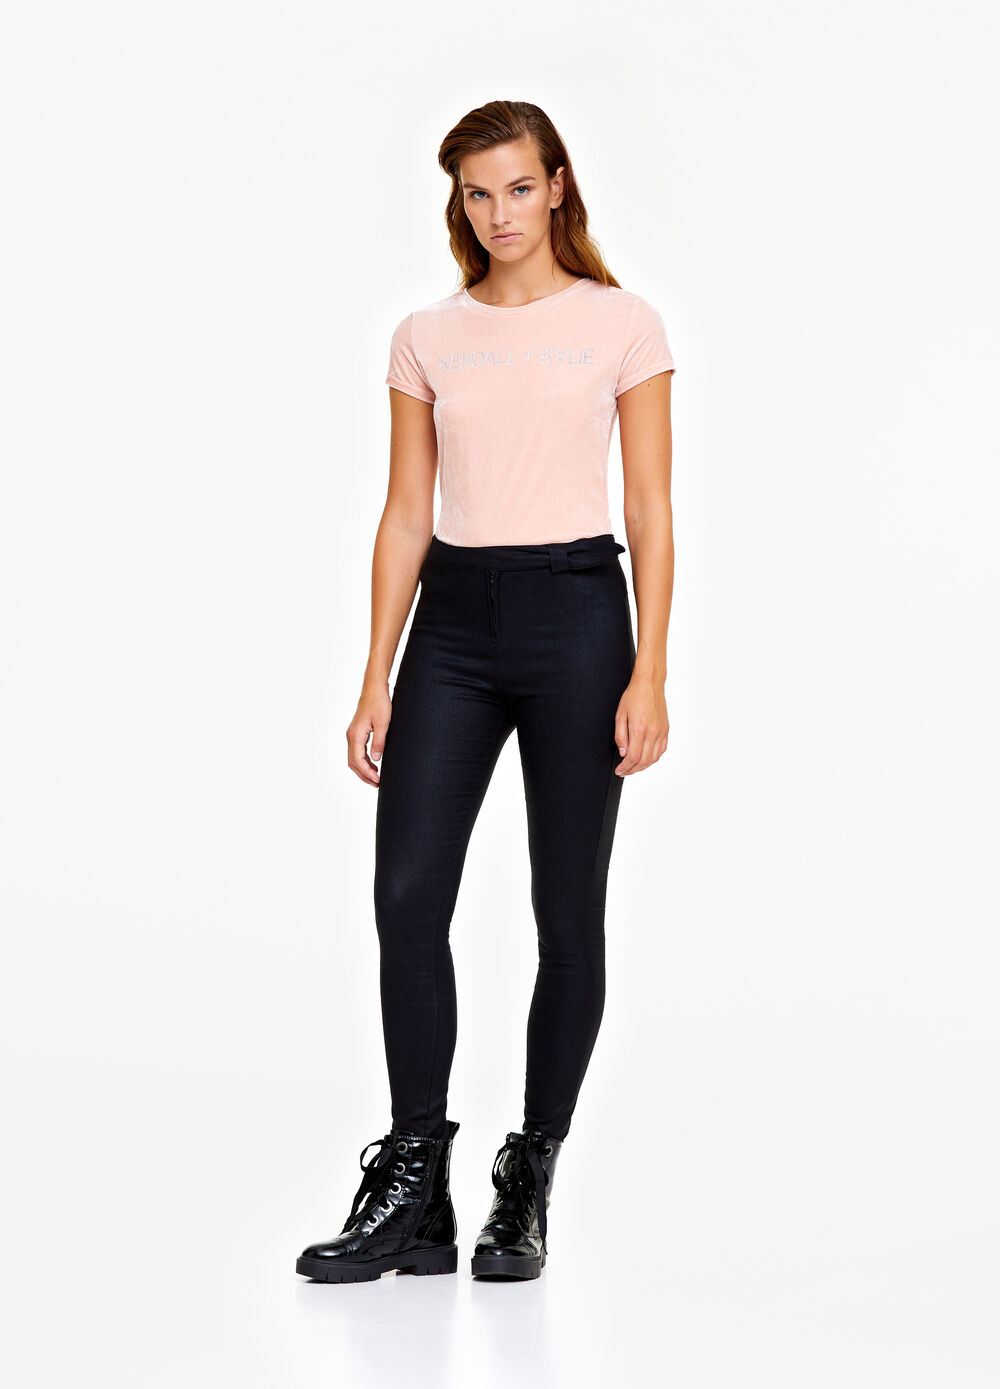 K+K for OVS trousers with zip